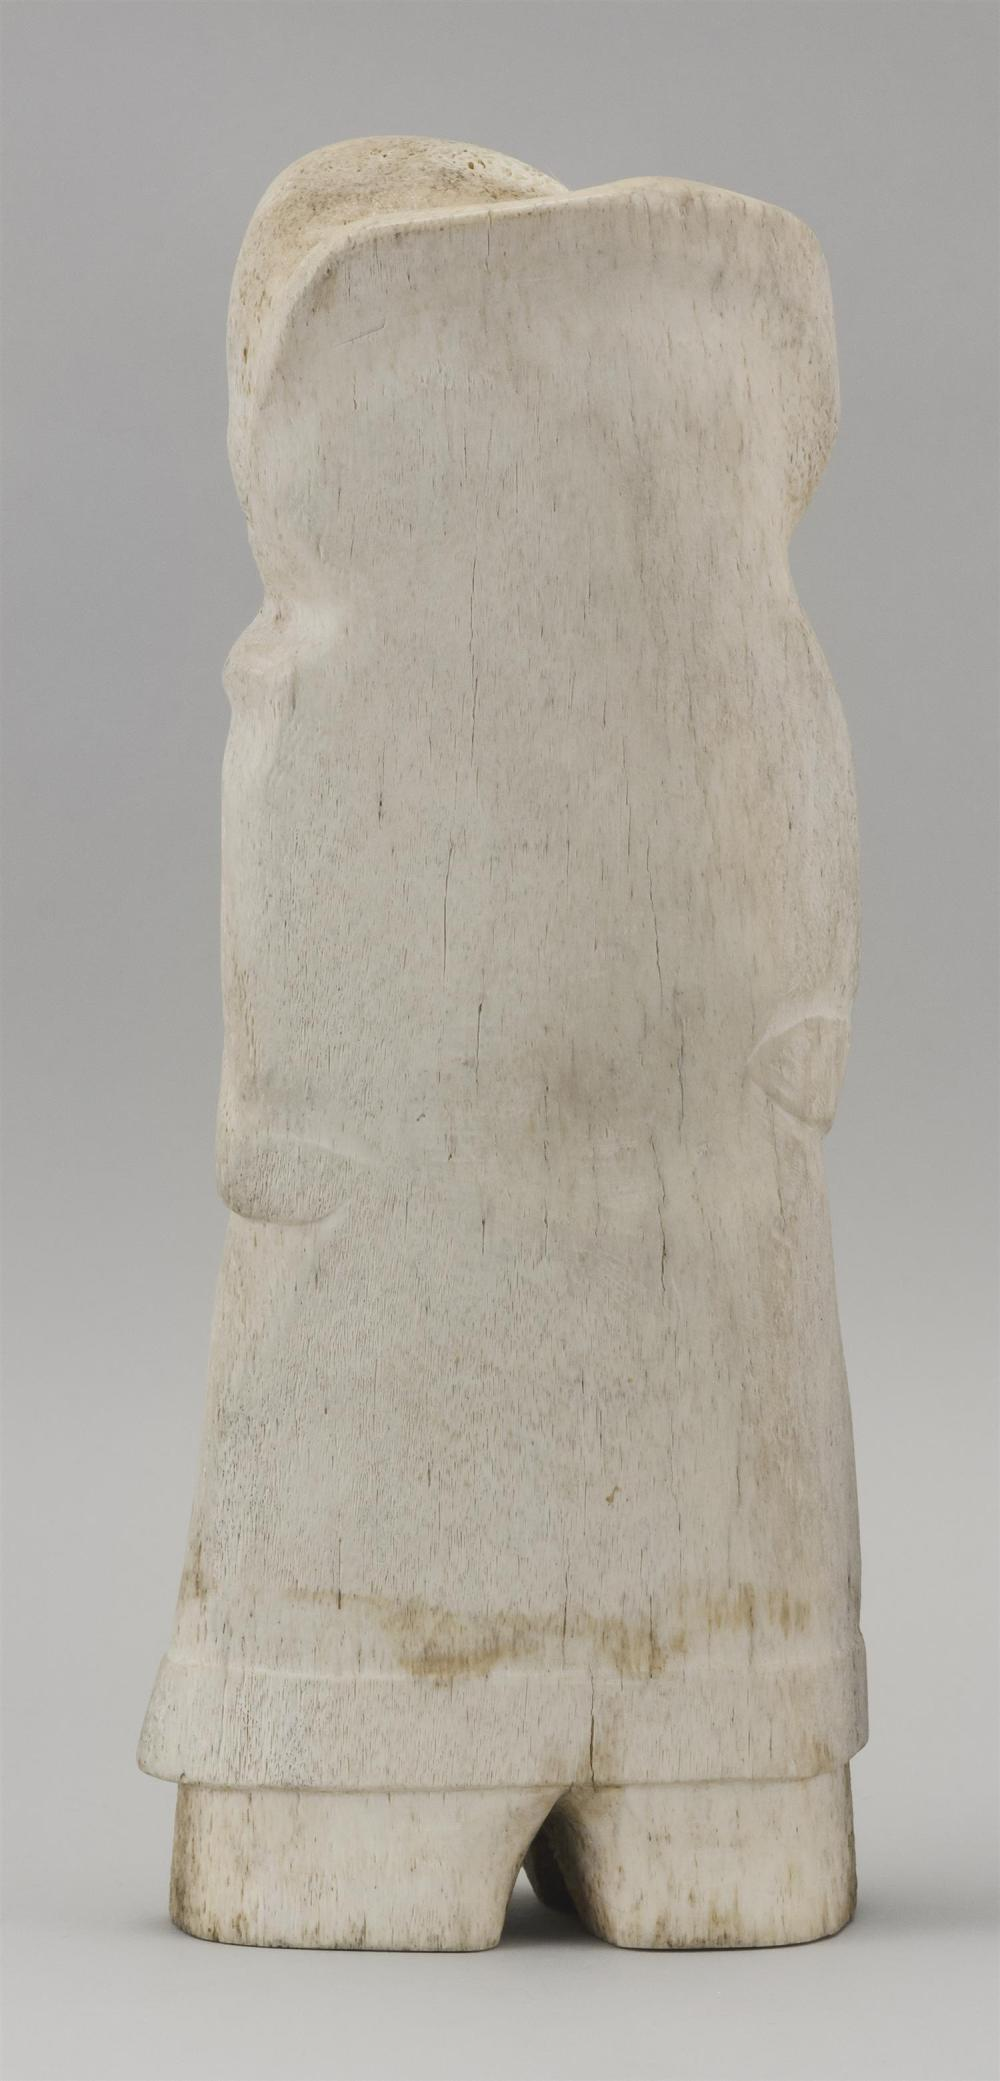 CAPE DORSET WHALEBONE CARVING